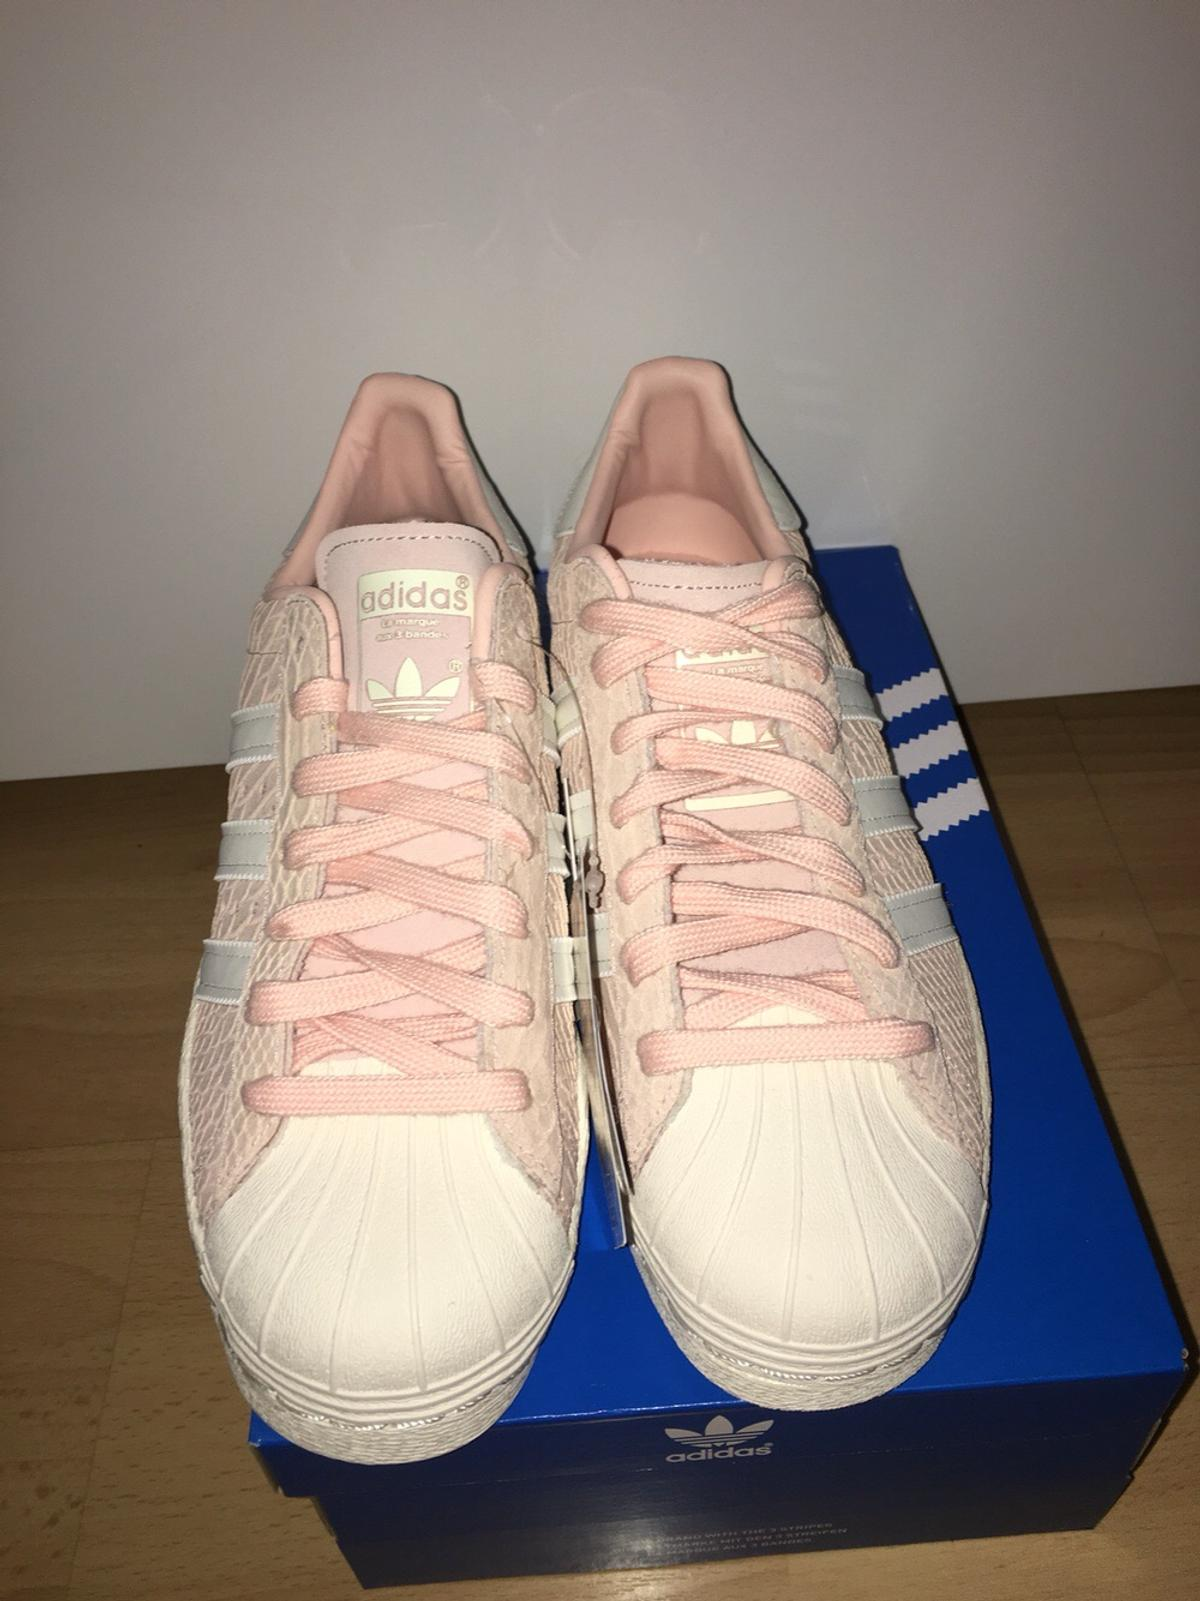 Adidas Superstars 80s rosa pinkblush offwhite in 30161